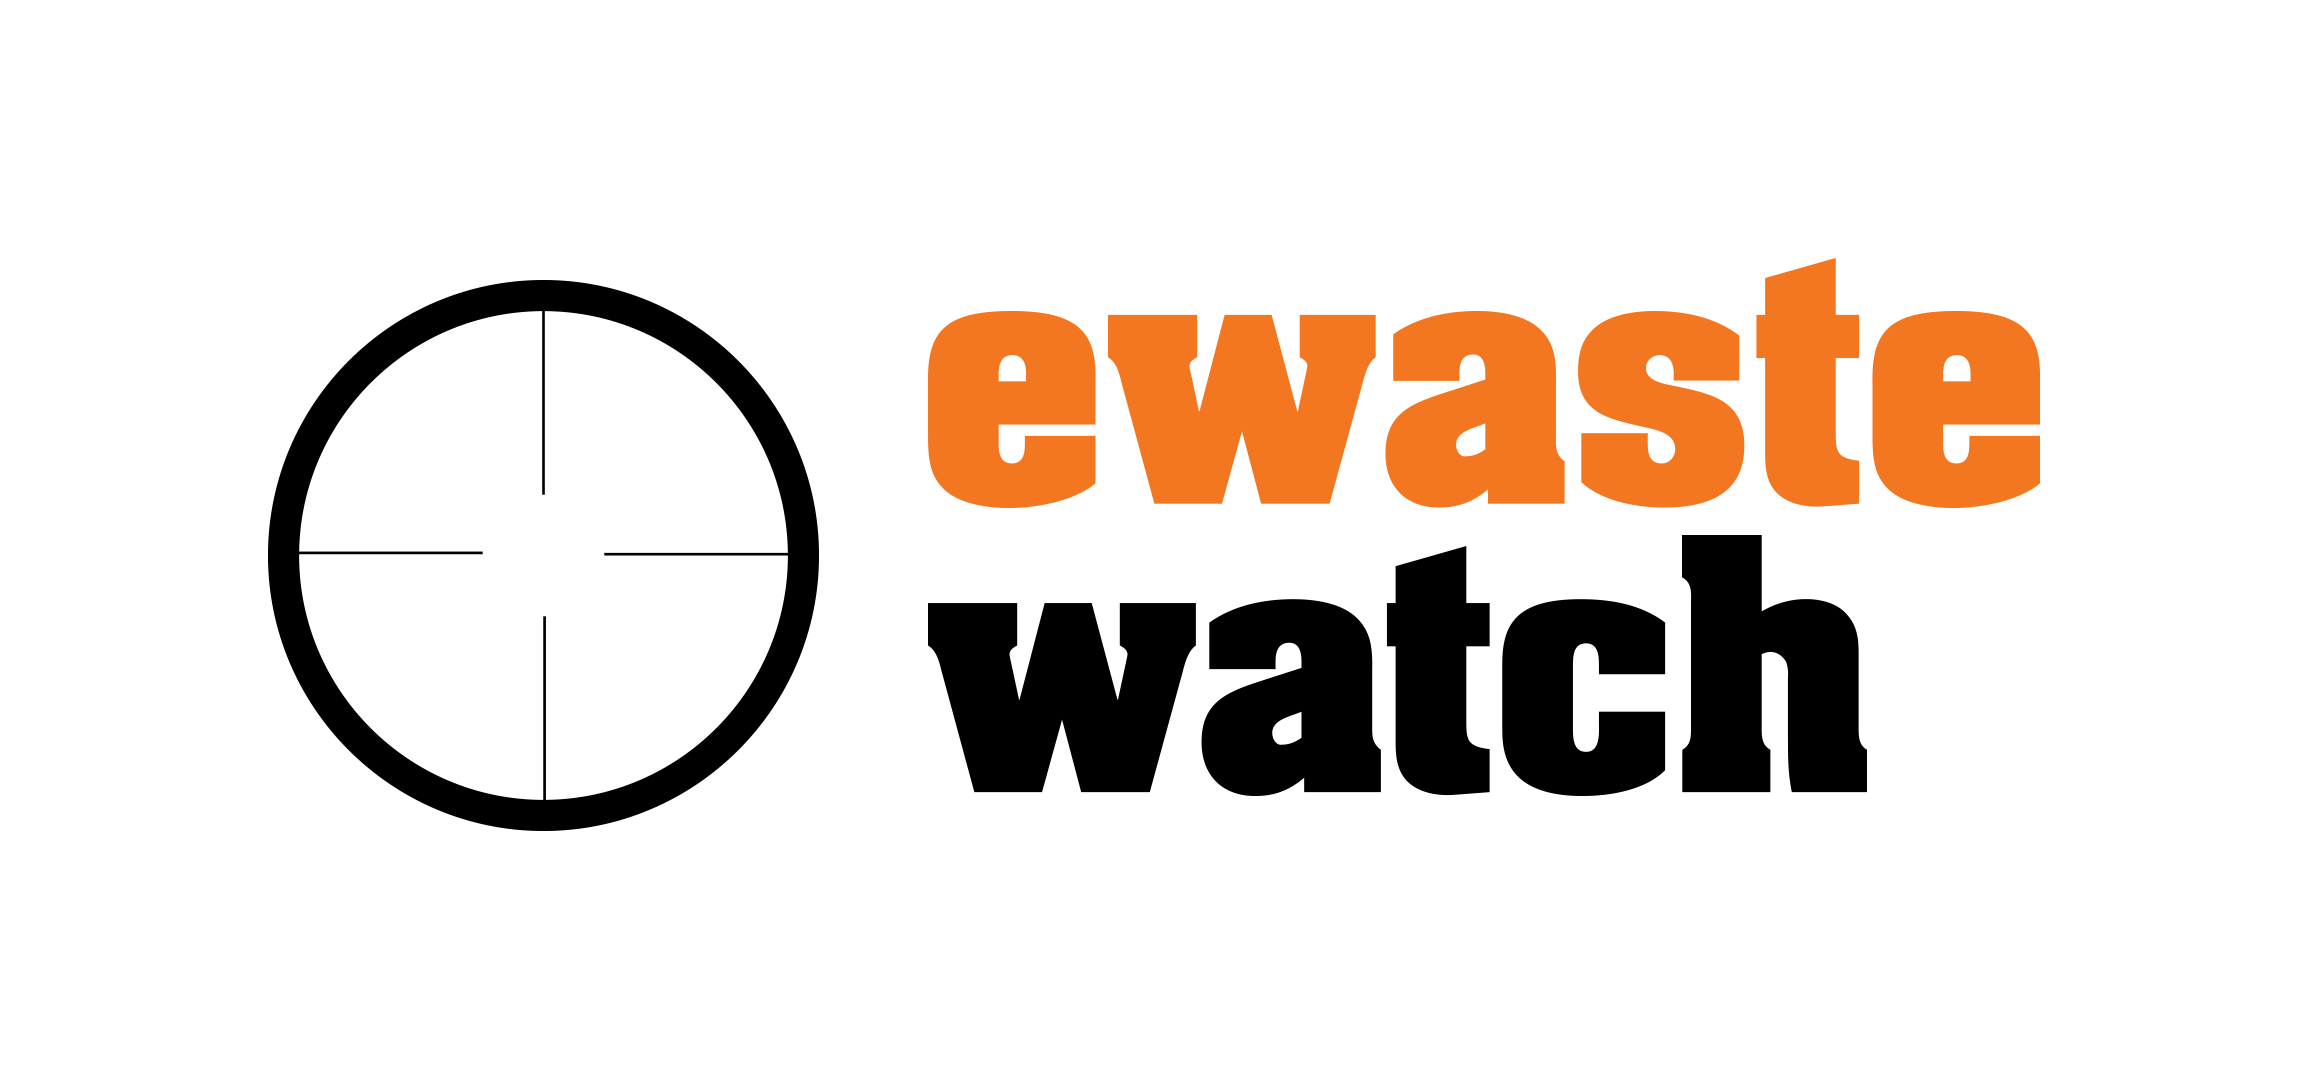 Ewaste Watch Institute Logo